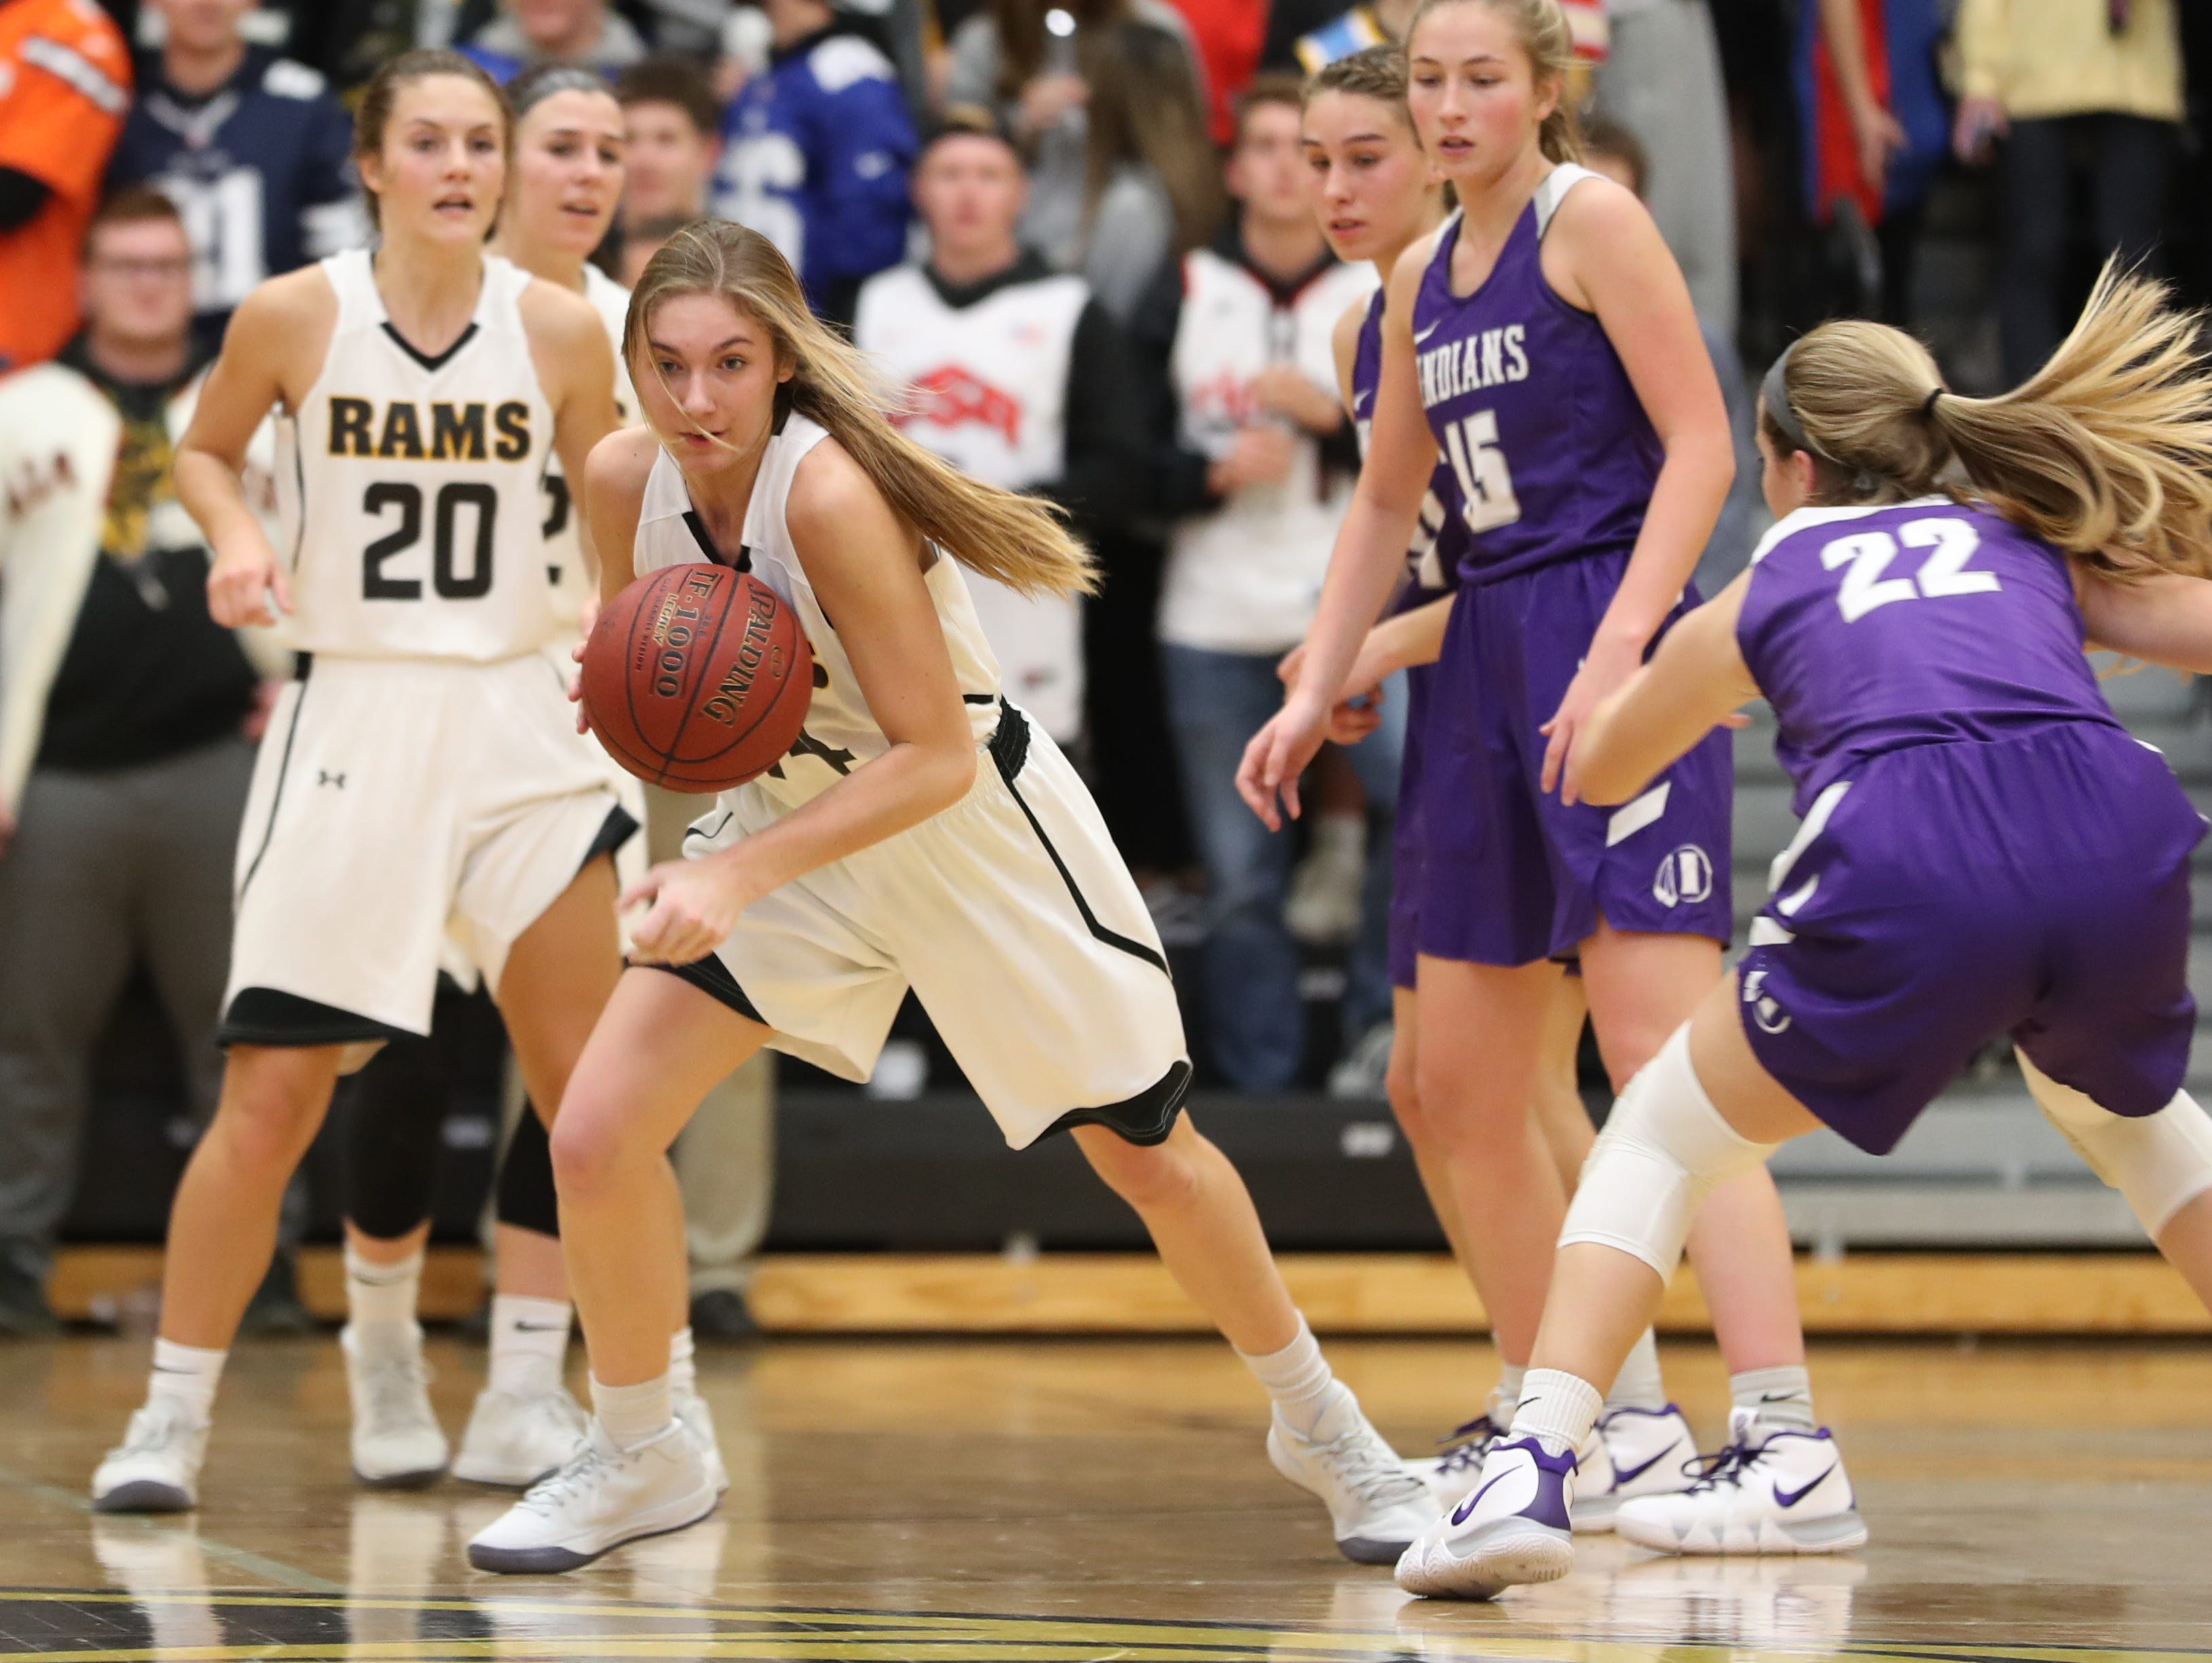 Nov 20, 2018; Pleasant Hill, IA, USA; Southeast Polk Rams Jessica Stuart (14) drives the lane during their game with the Indianola Indians at Southeast Polk Gymnasium.